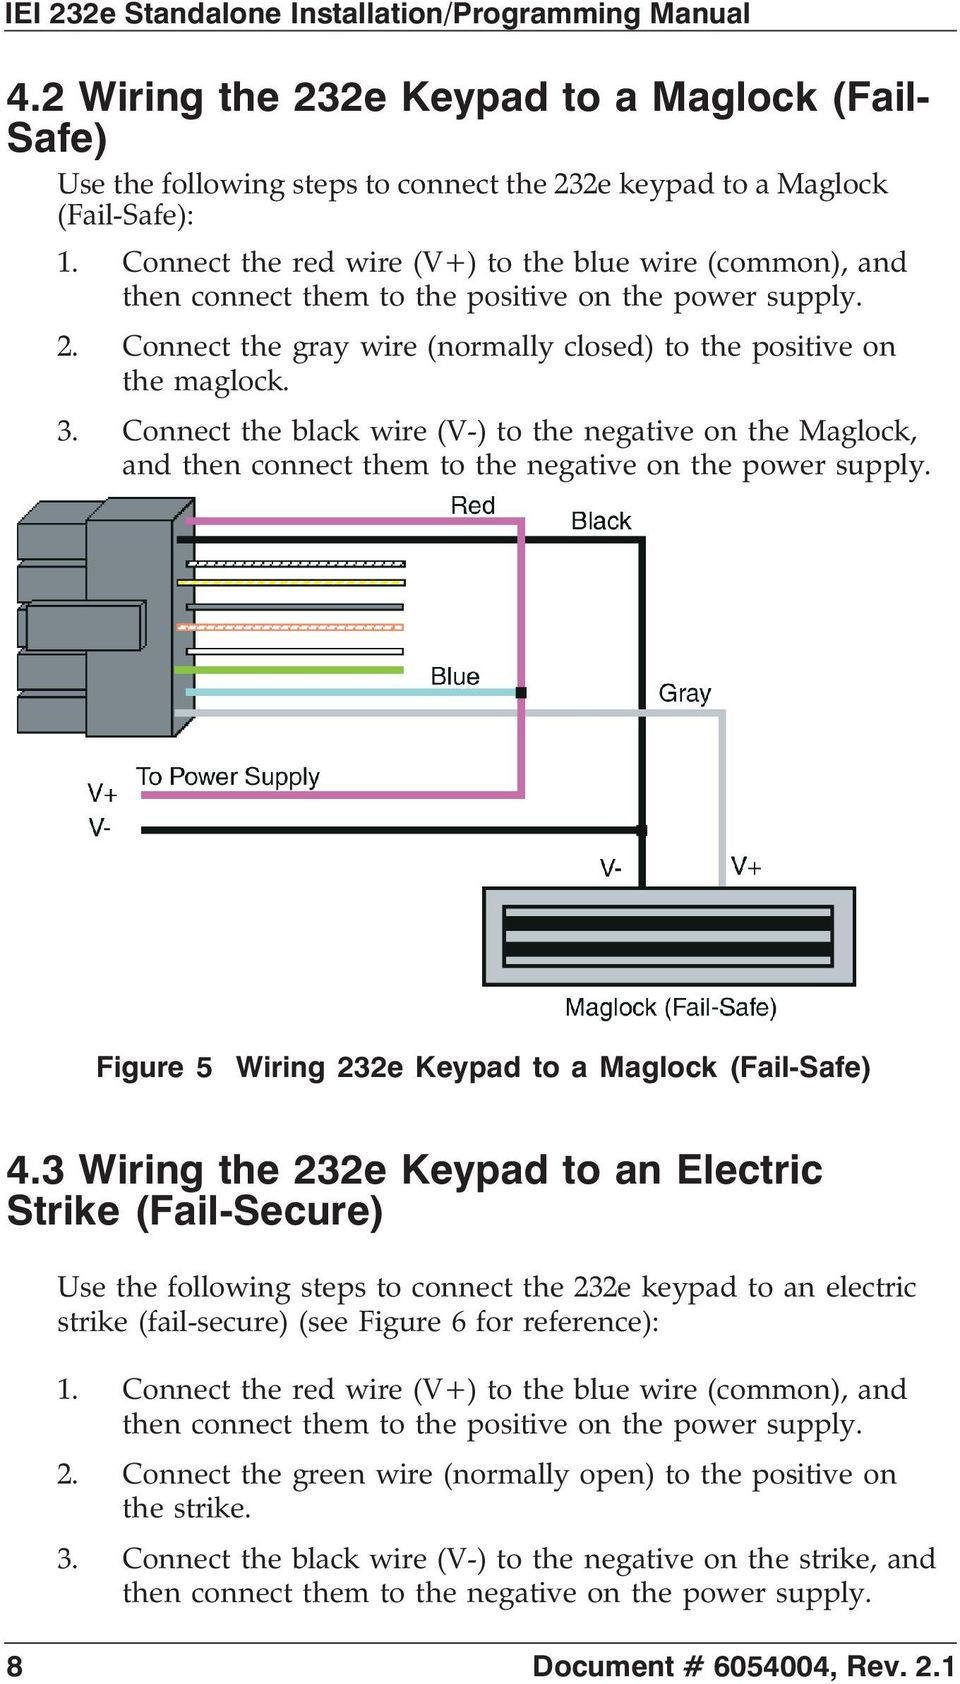 Wiring Diagram To Maglock Iei Keypad Libraries 232i Keypads 232e Standalone Tm Installation Programming Manual Pdfconnect The Black Wire V